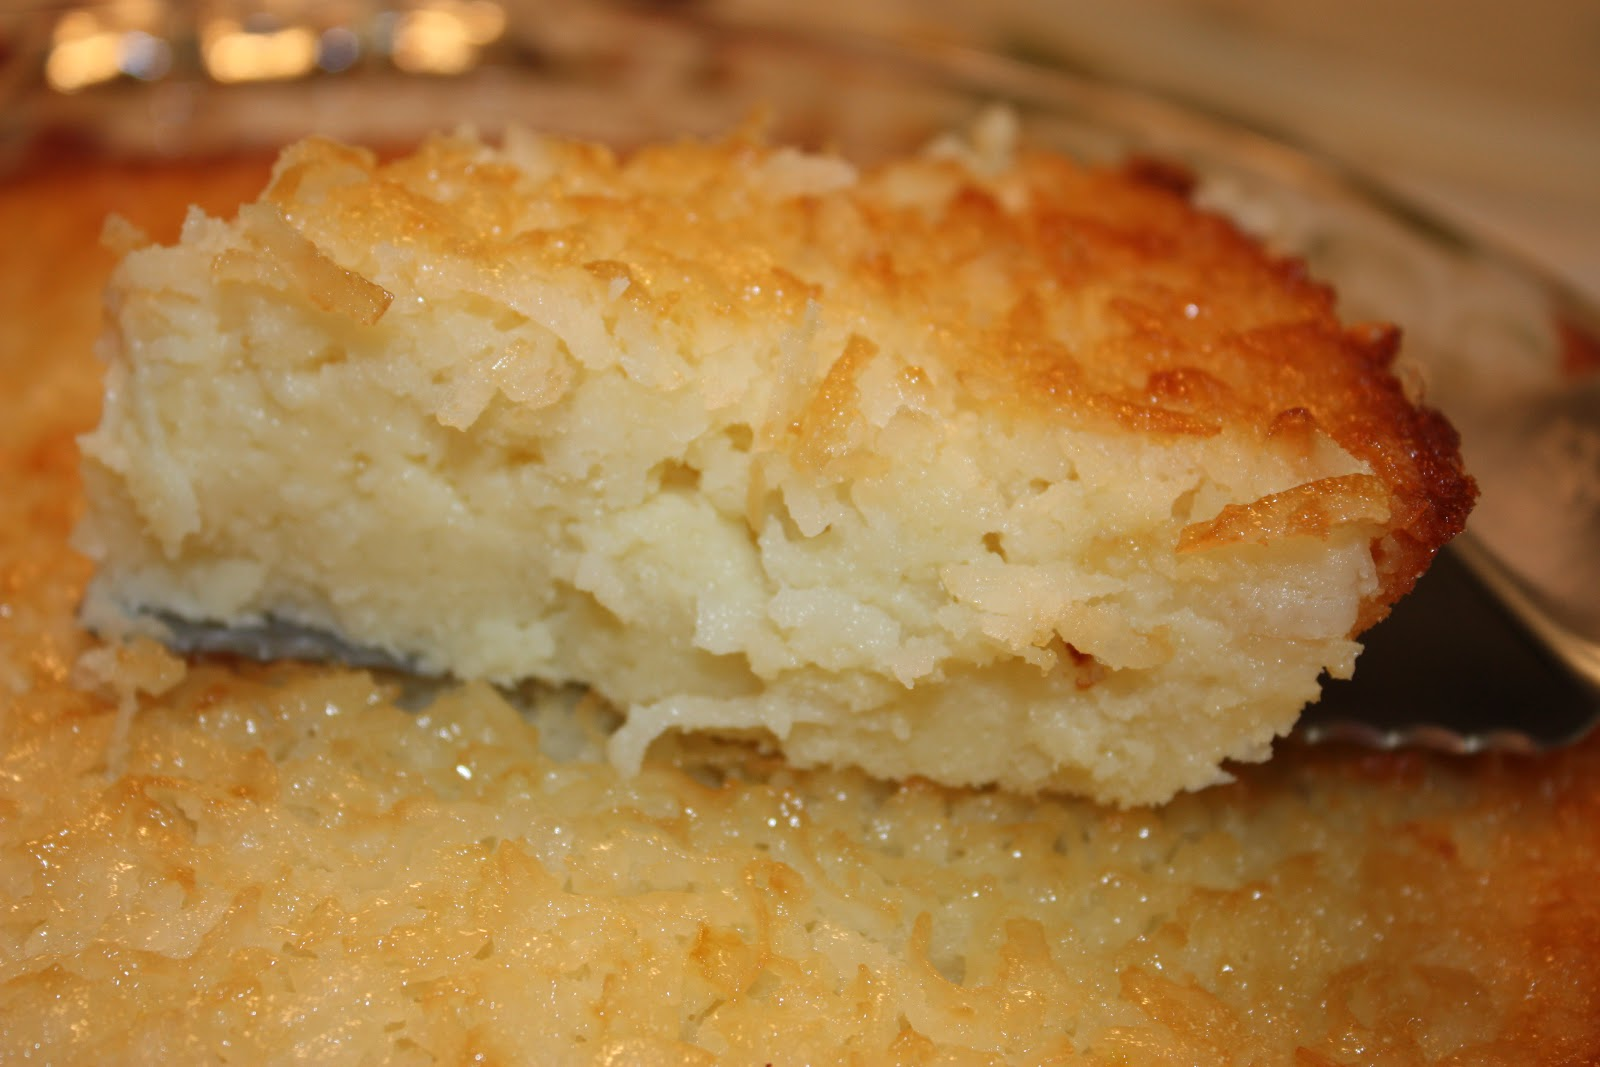 ... Gluten Free: My Version of a Gluten Free Crustless Coconut Pie